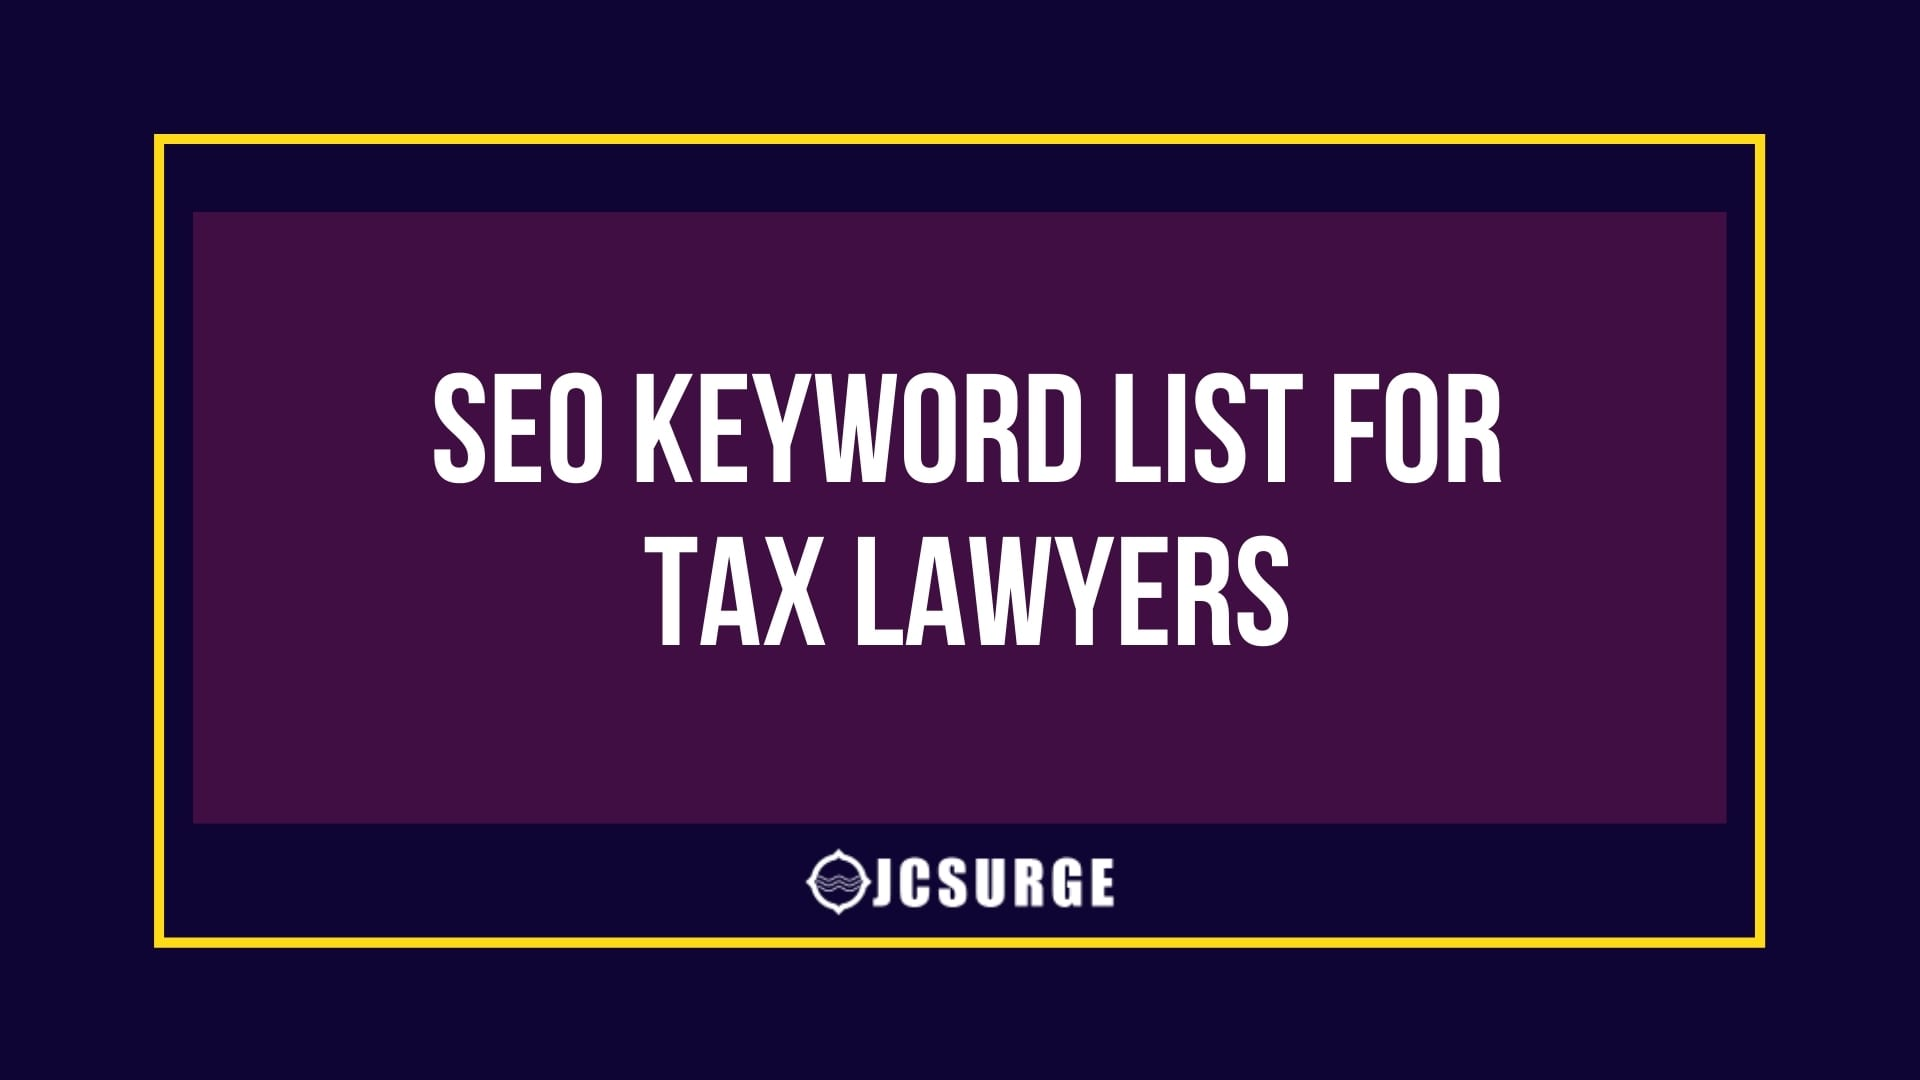 150 Keywords Tax Lawyers Should Use on Their Website